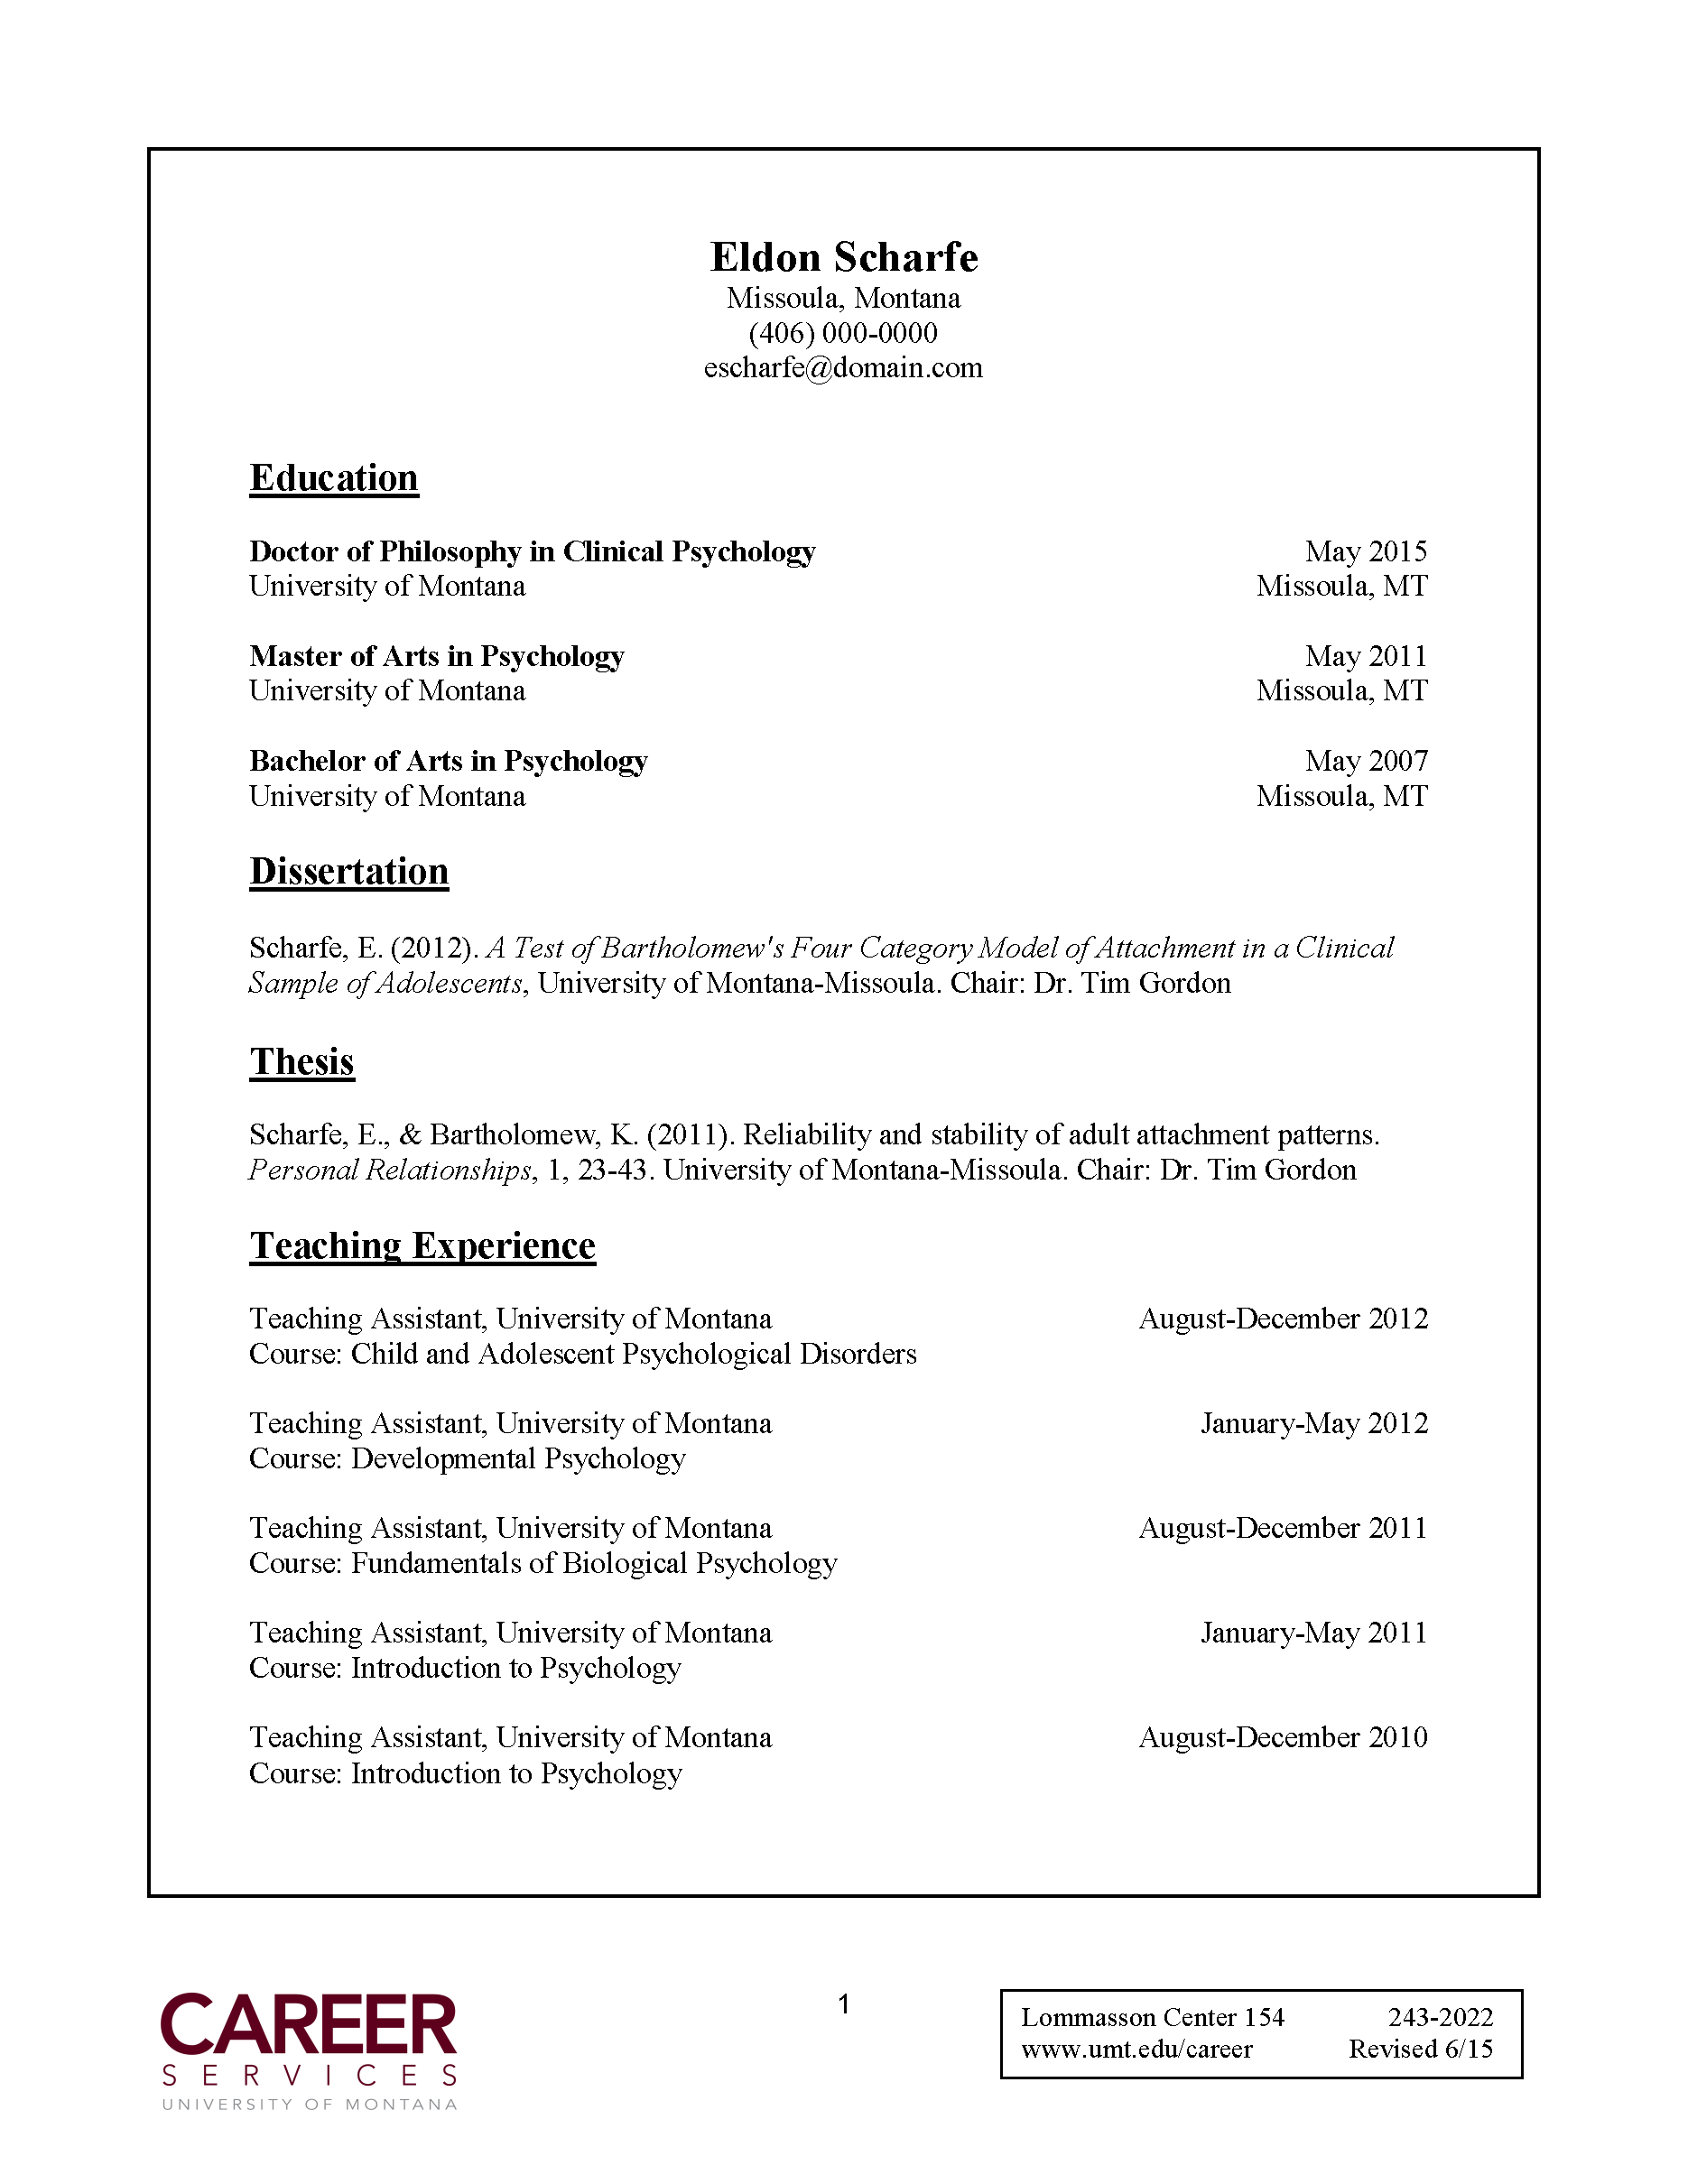 ewan paterson resume ddb thesis about learning english language